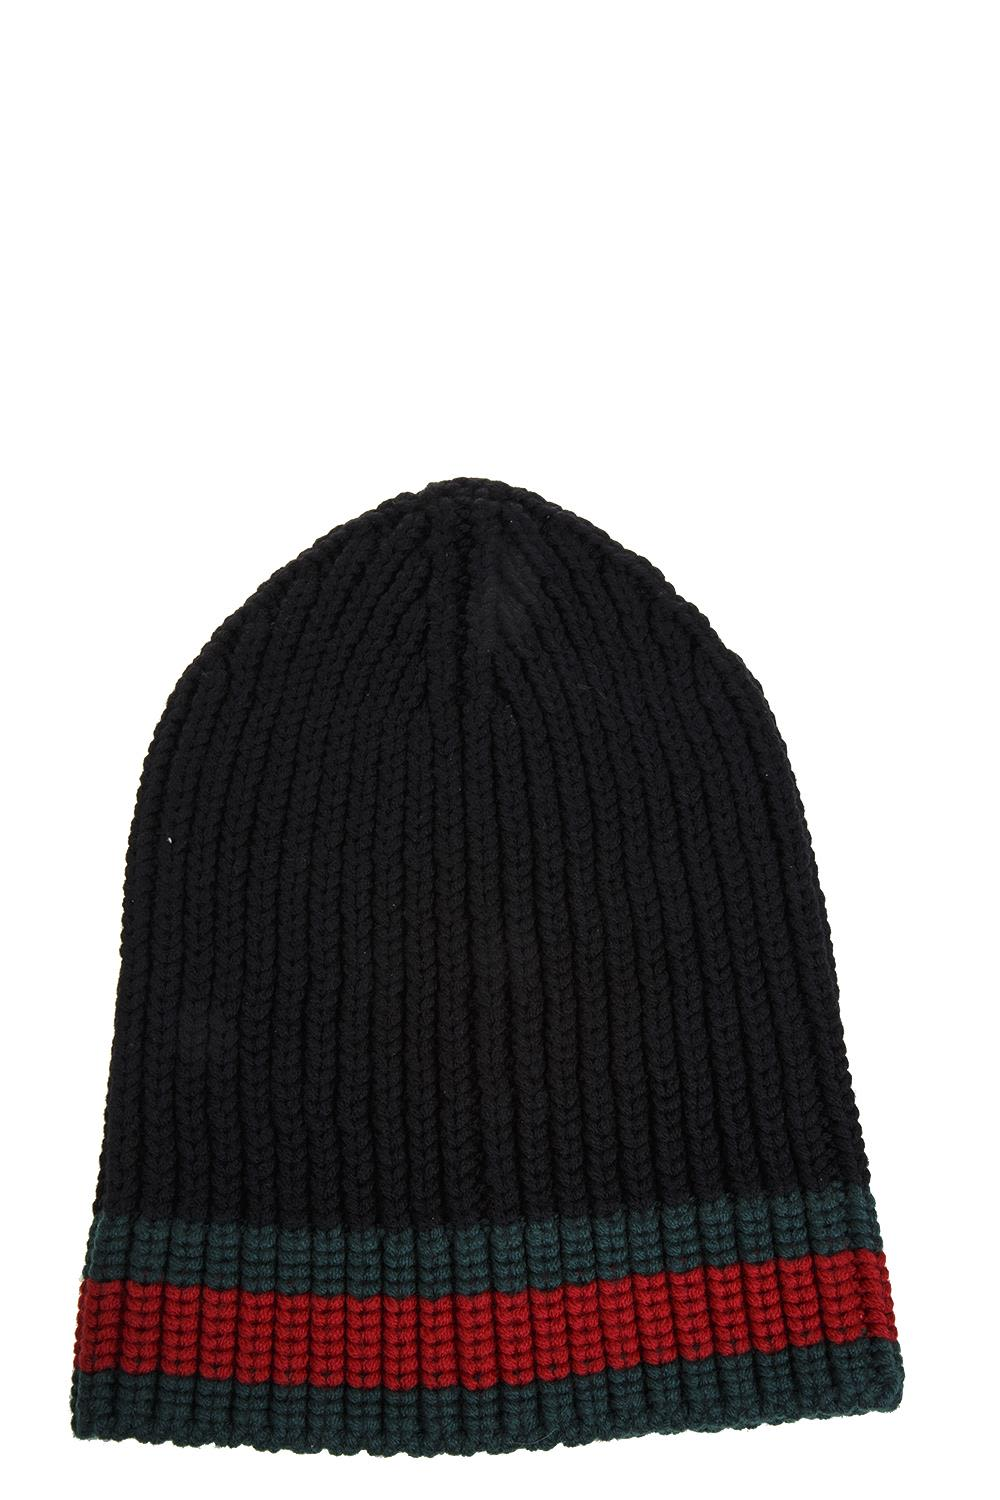 Gucci Web Wool Cable Knit Beanie Hat In Black  a33169851dd